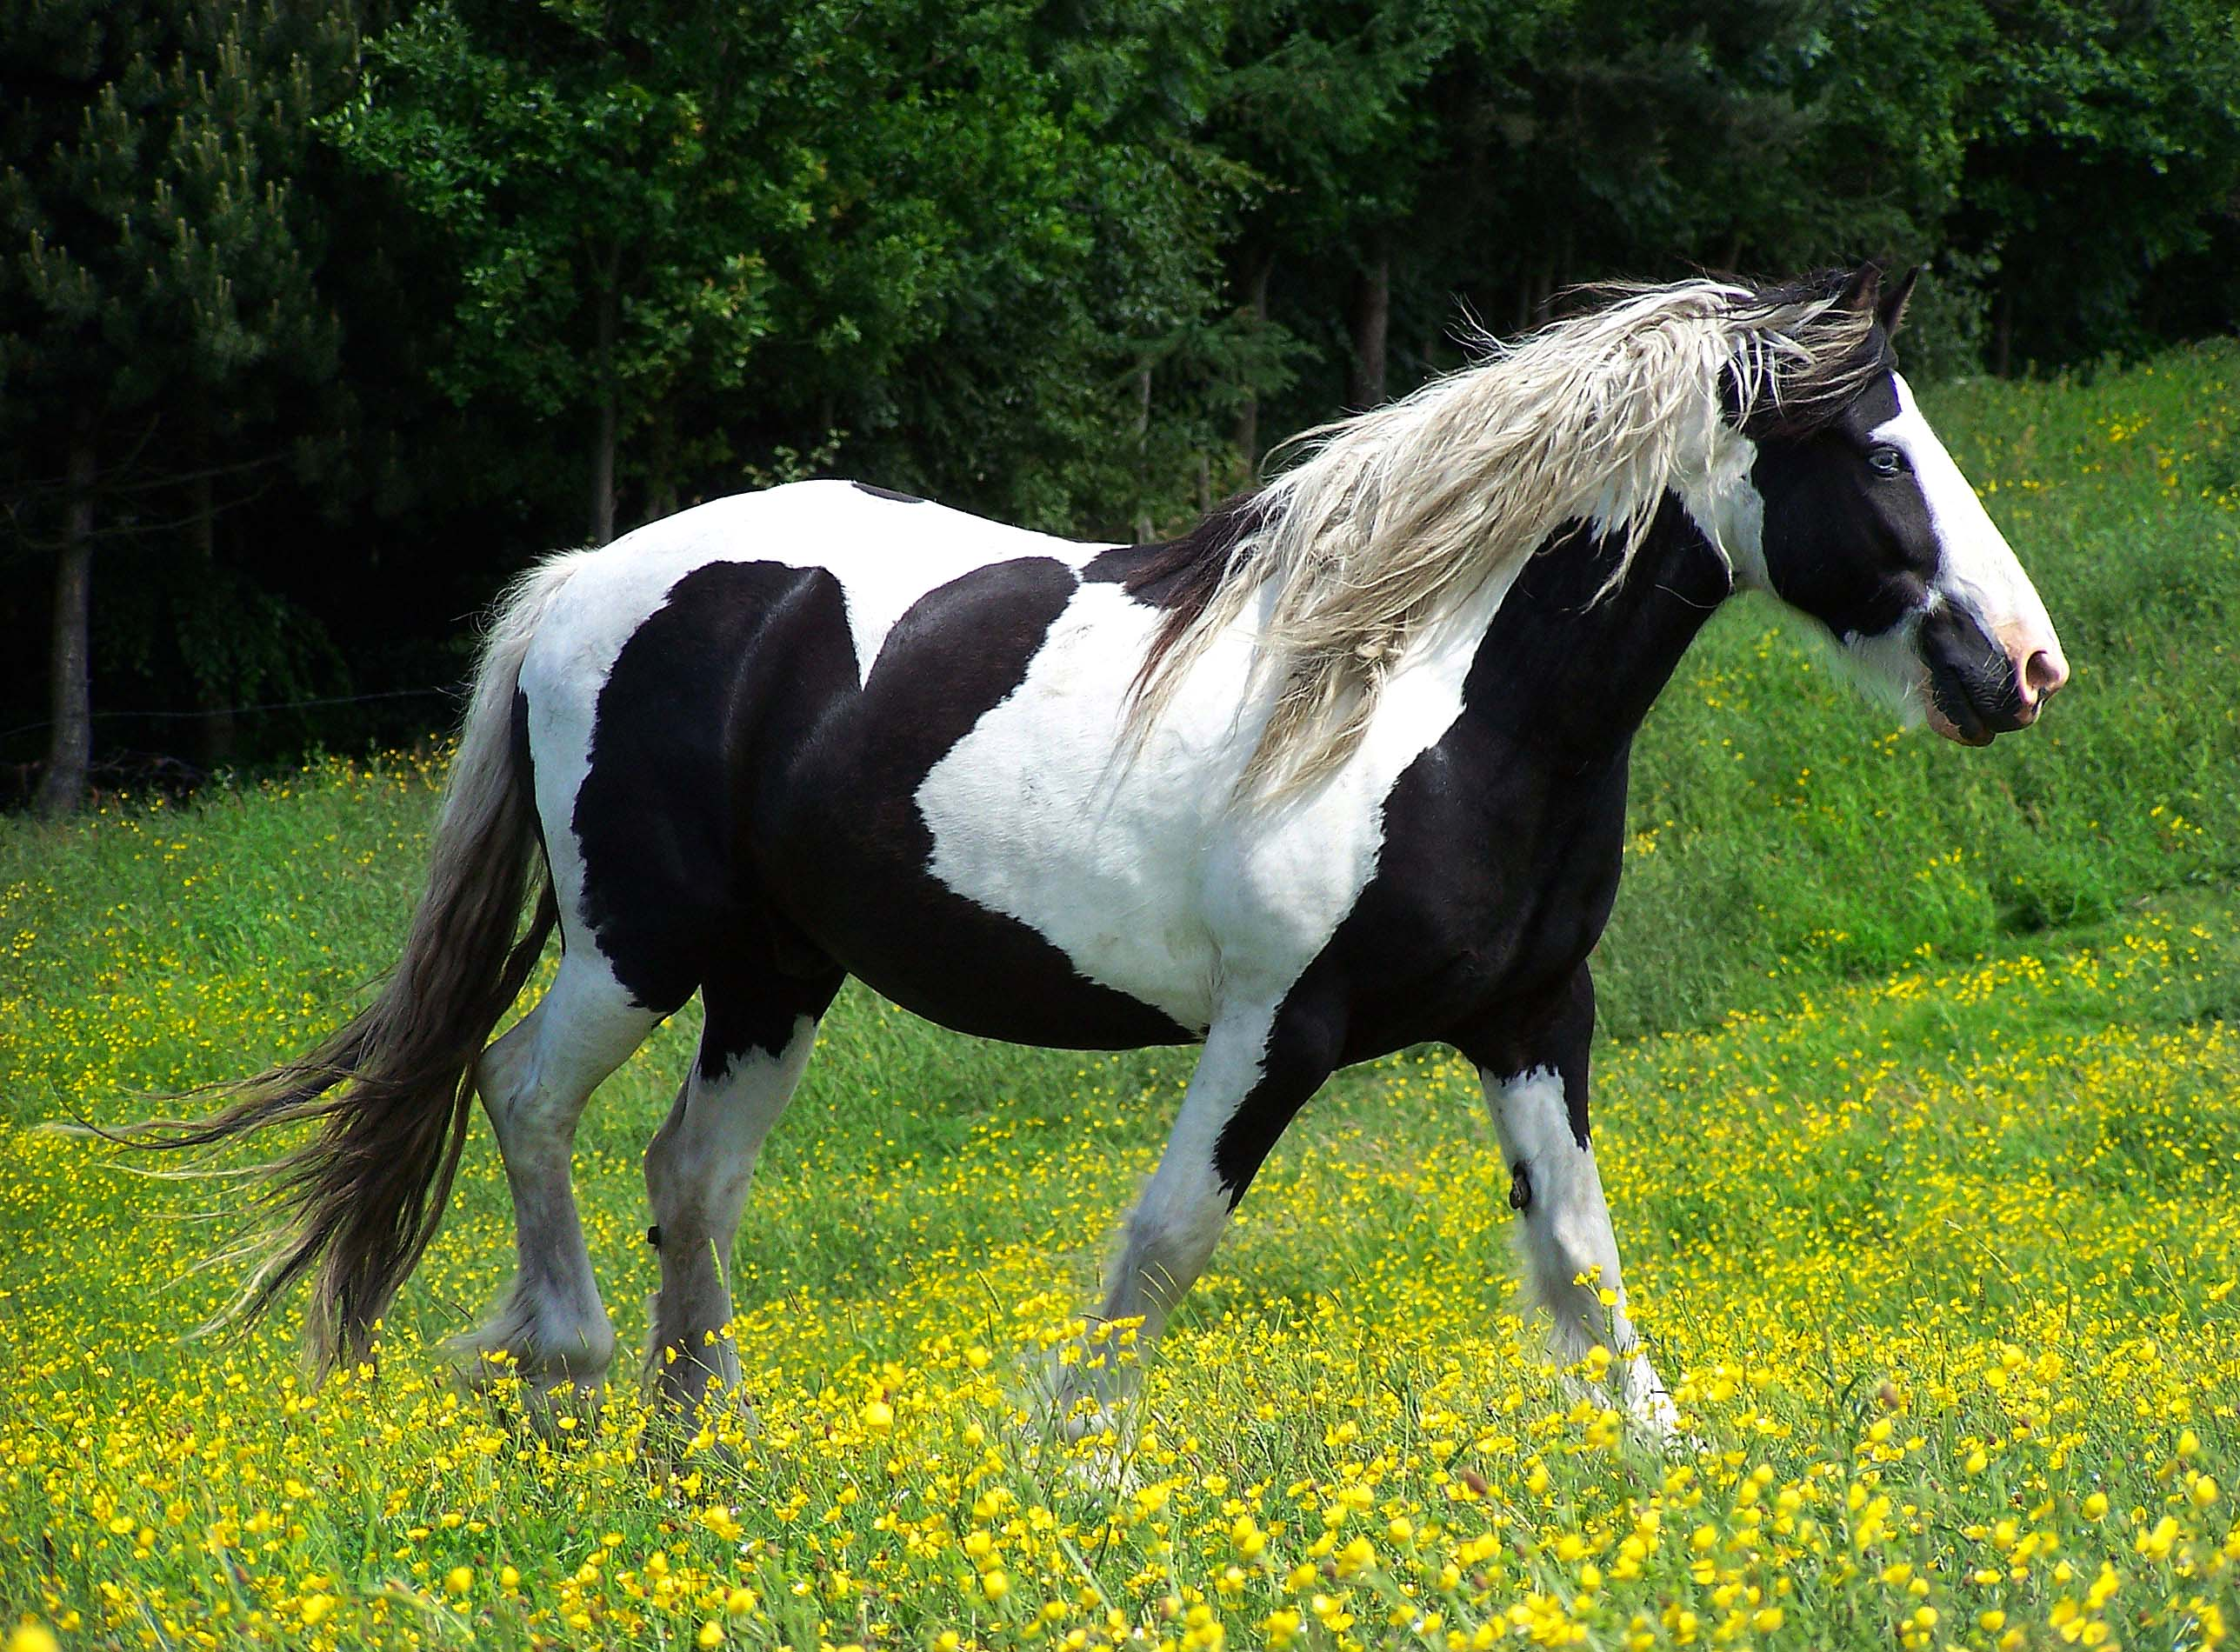 Black and white horse picture - photo#7